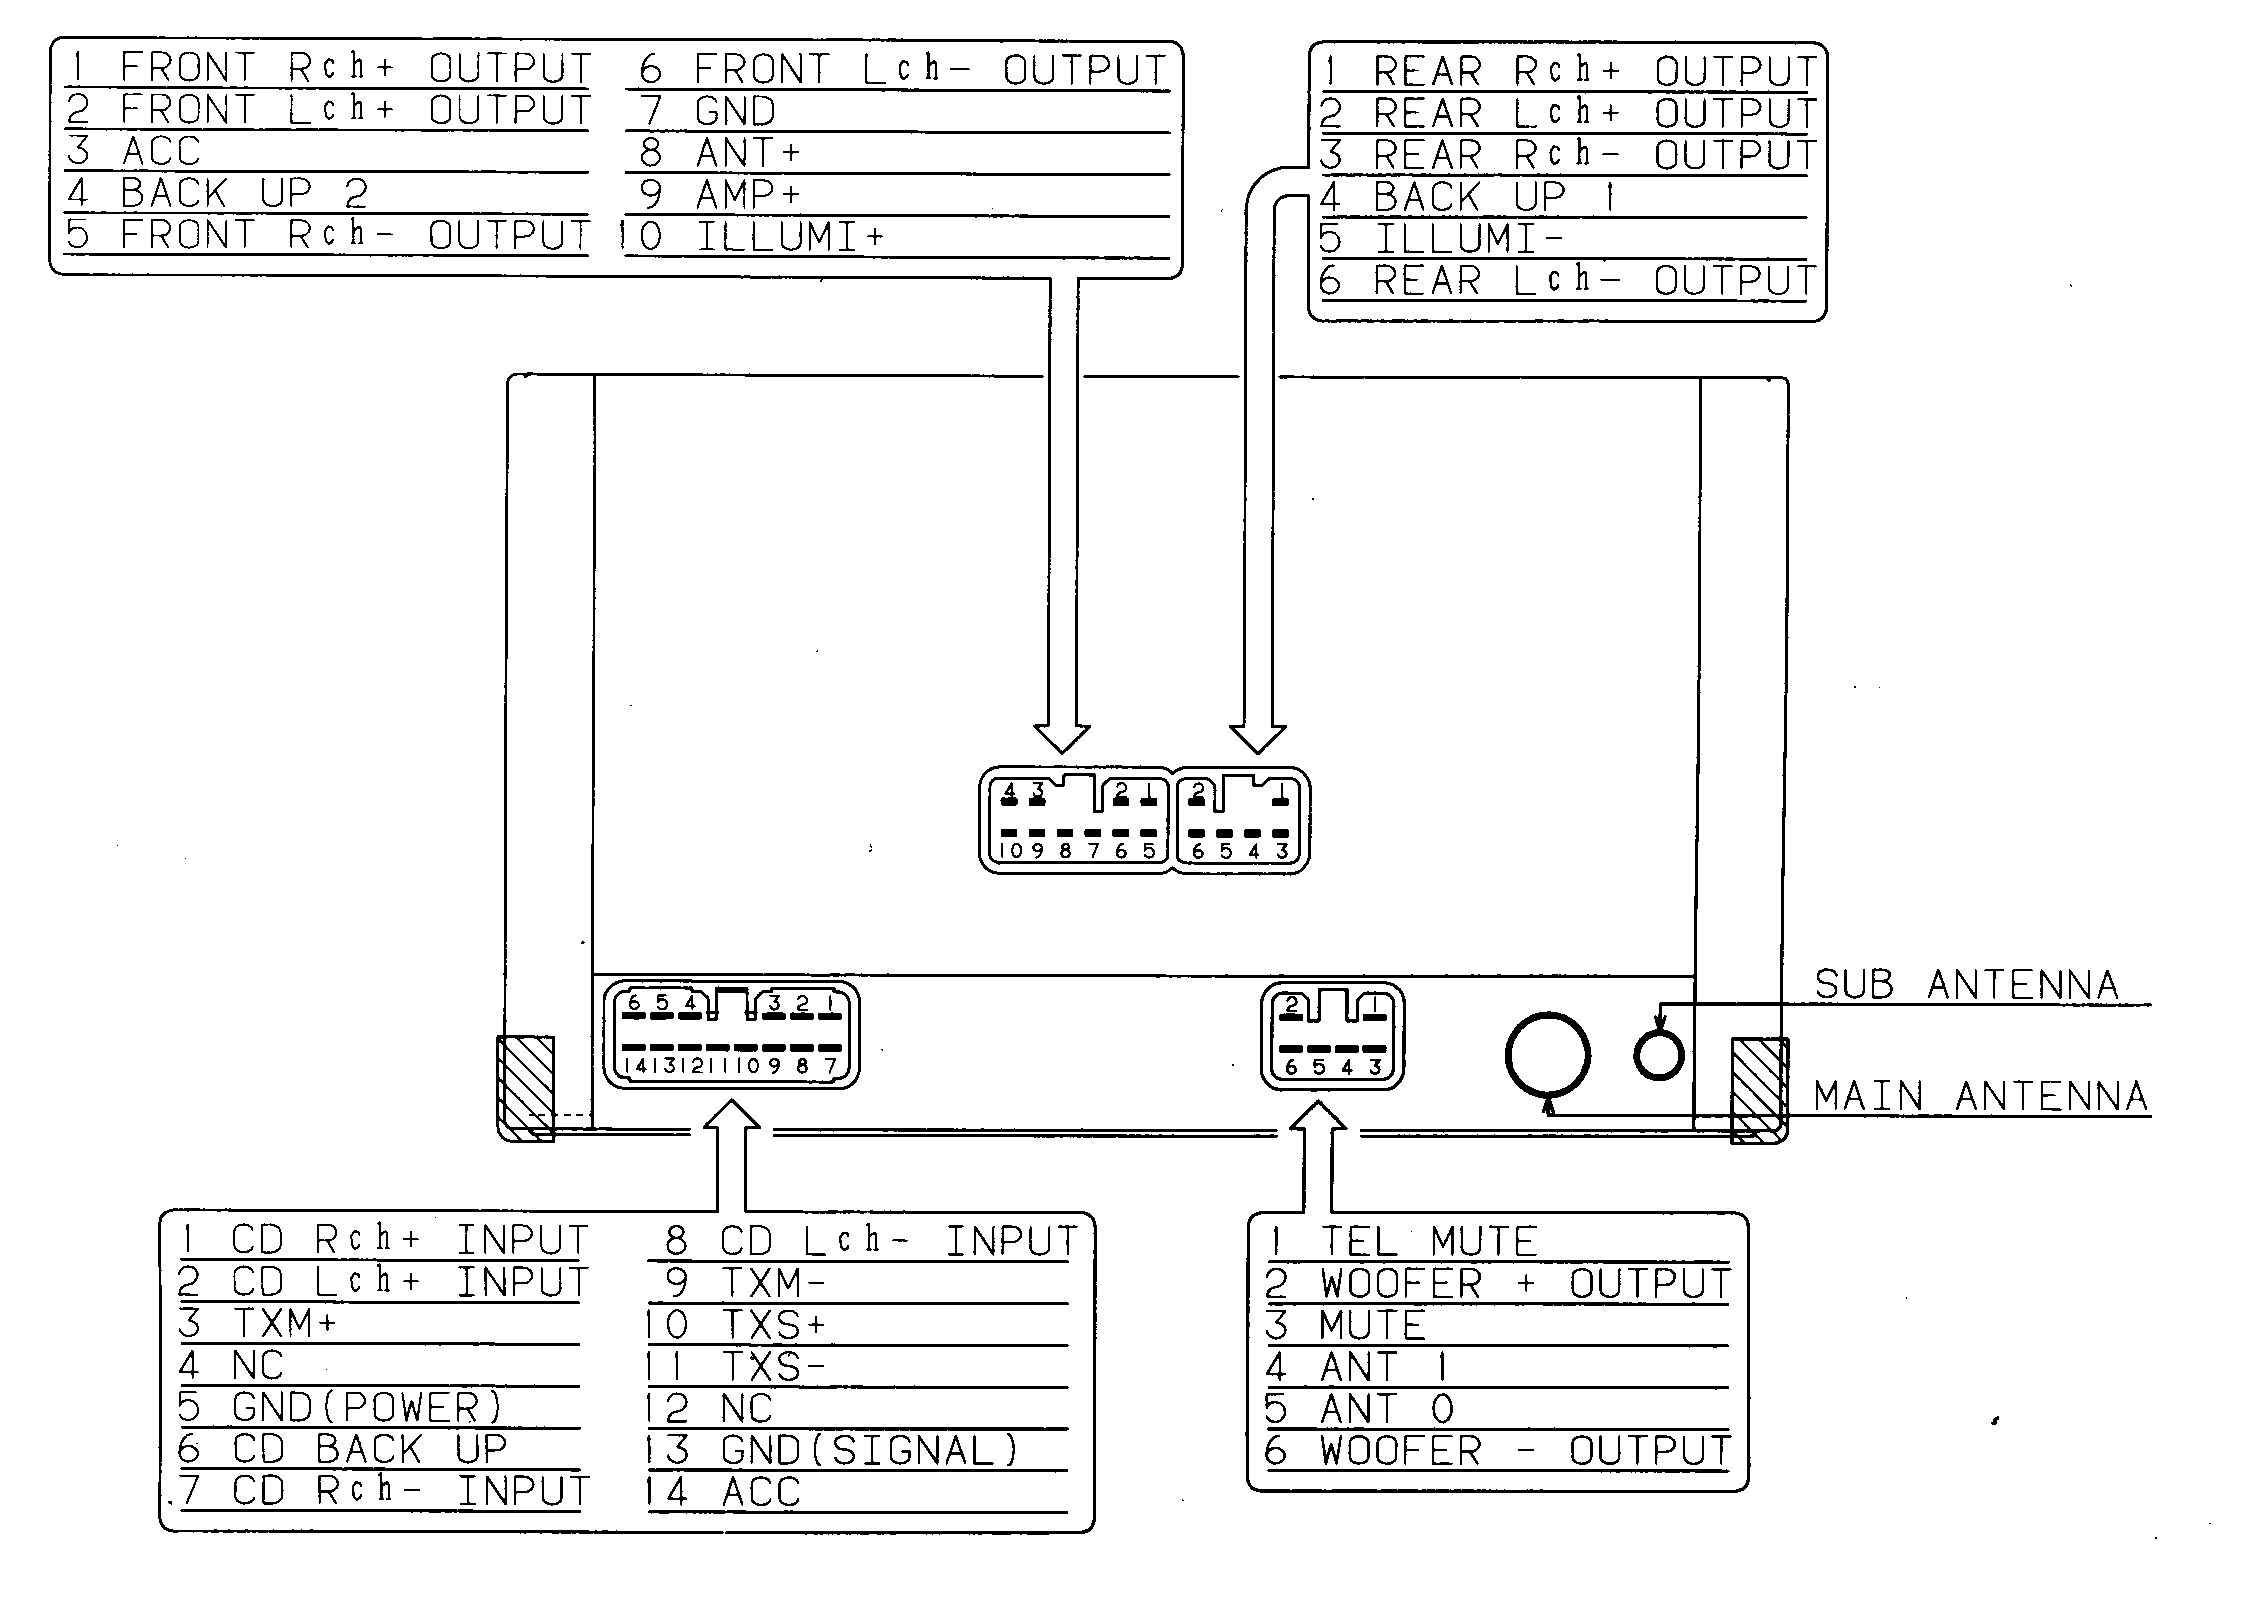 car audio wire diagram codes lexus factory car stereo repair wiring diagrams car audio car stereo repair wire harness codes bose car stereo, speaker, amplifier repair